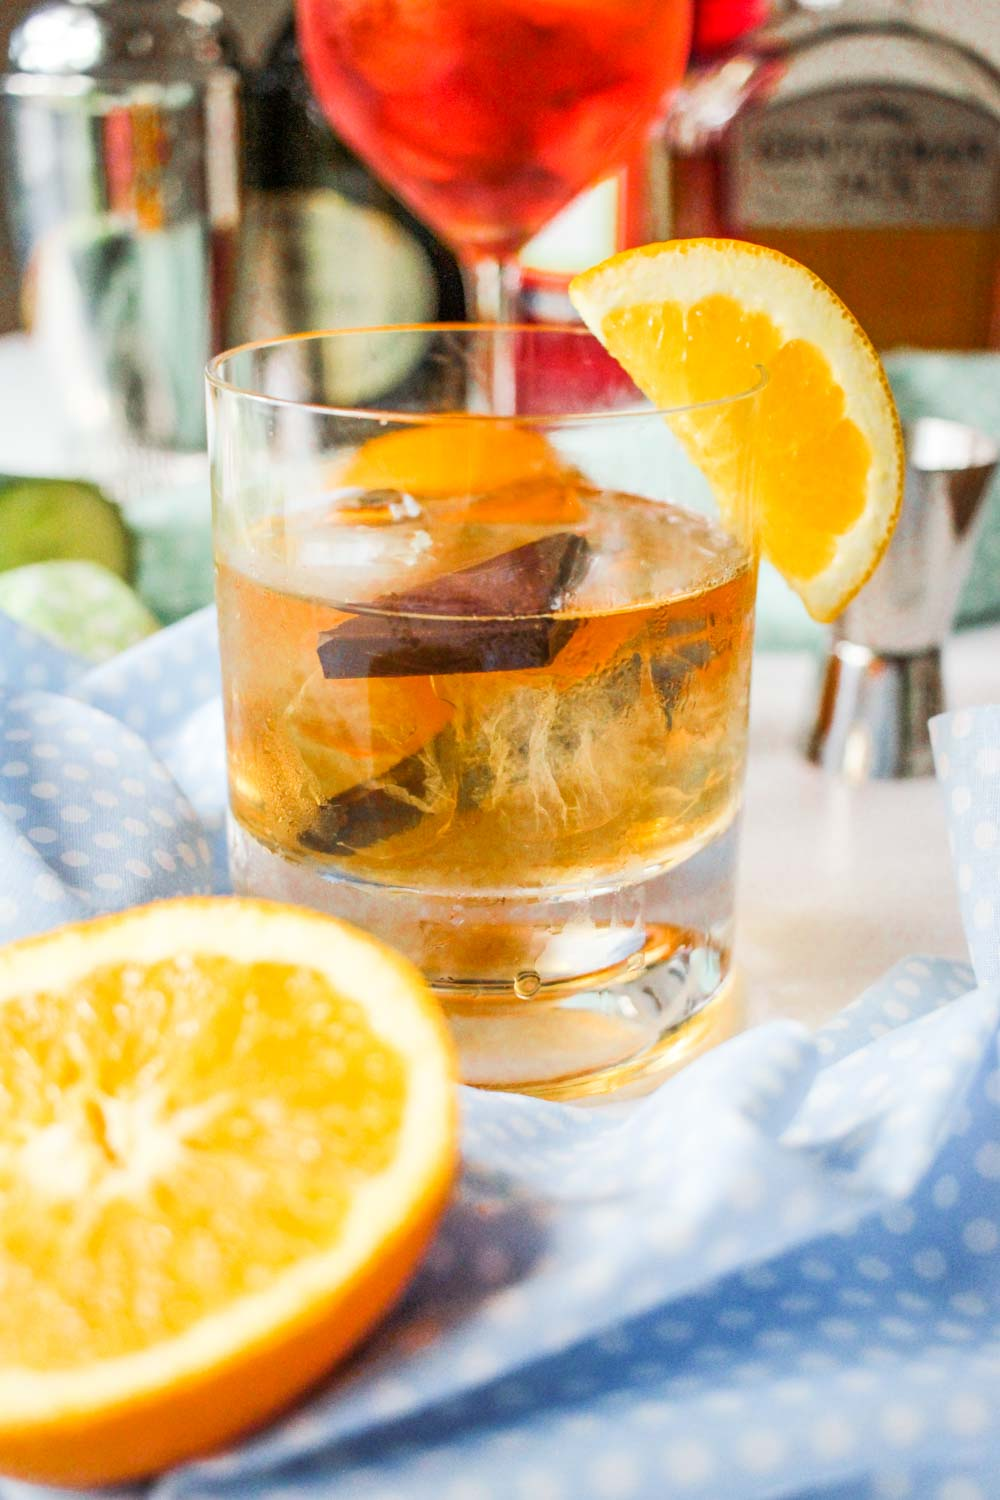 Chocolate Orange Old Fashioned Cocktail Recipe